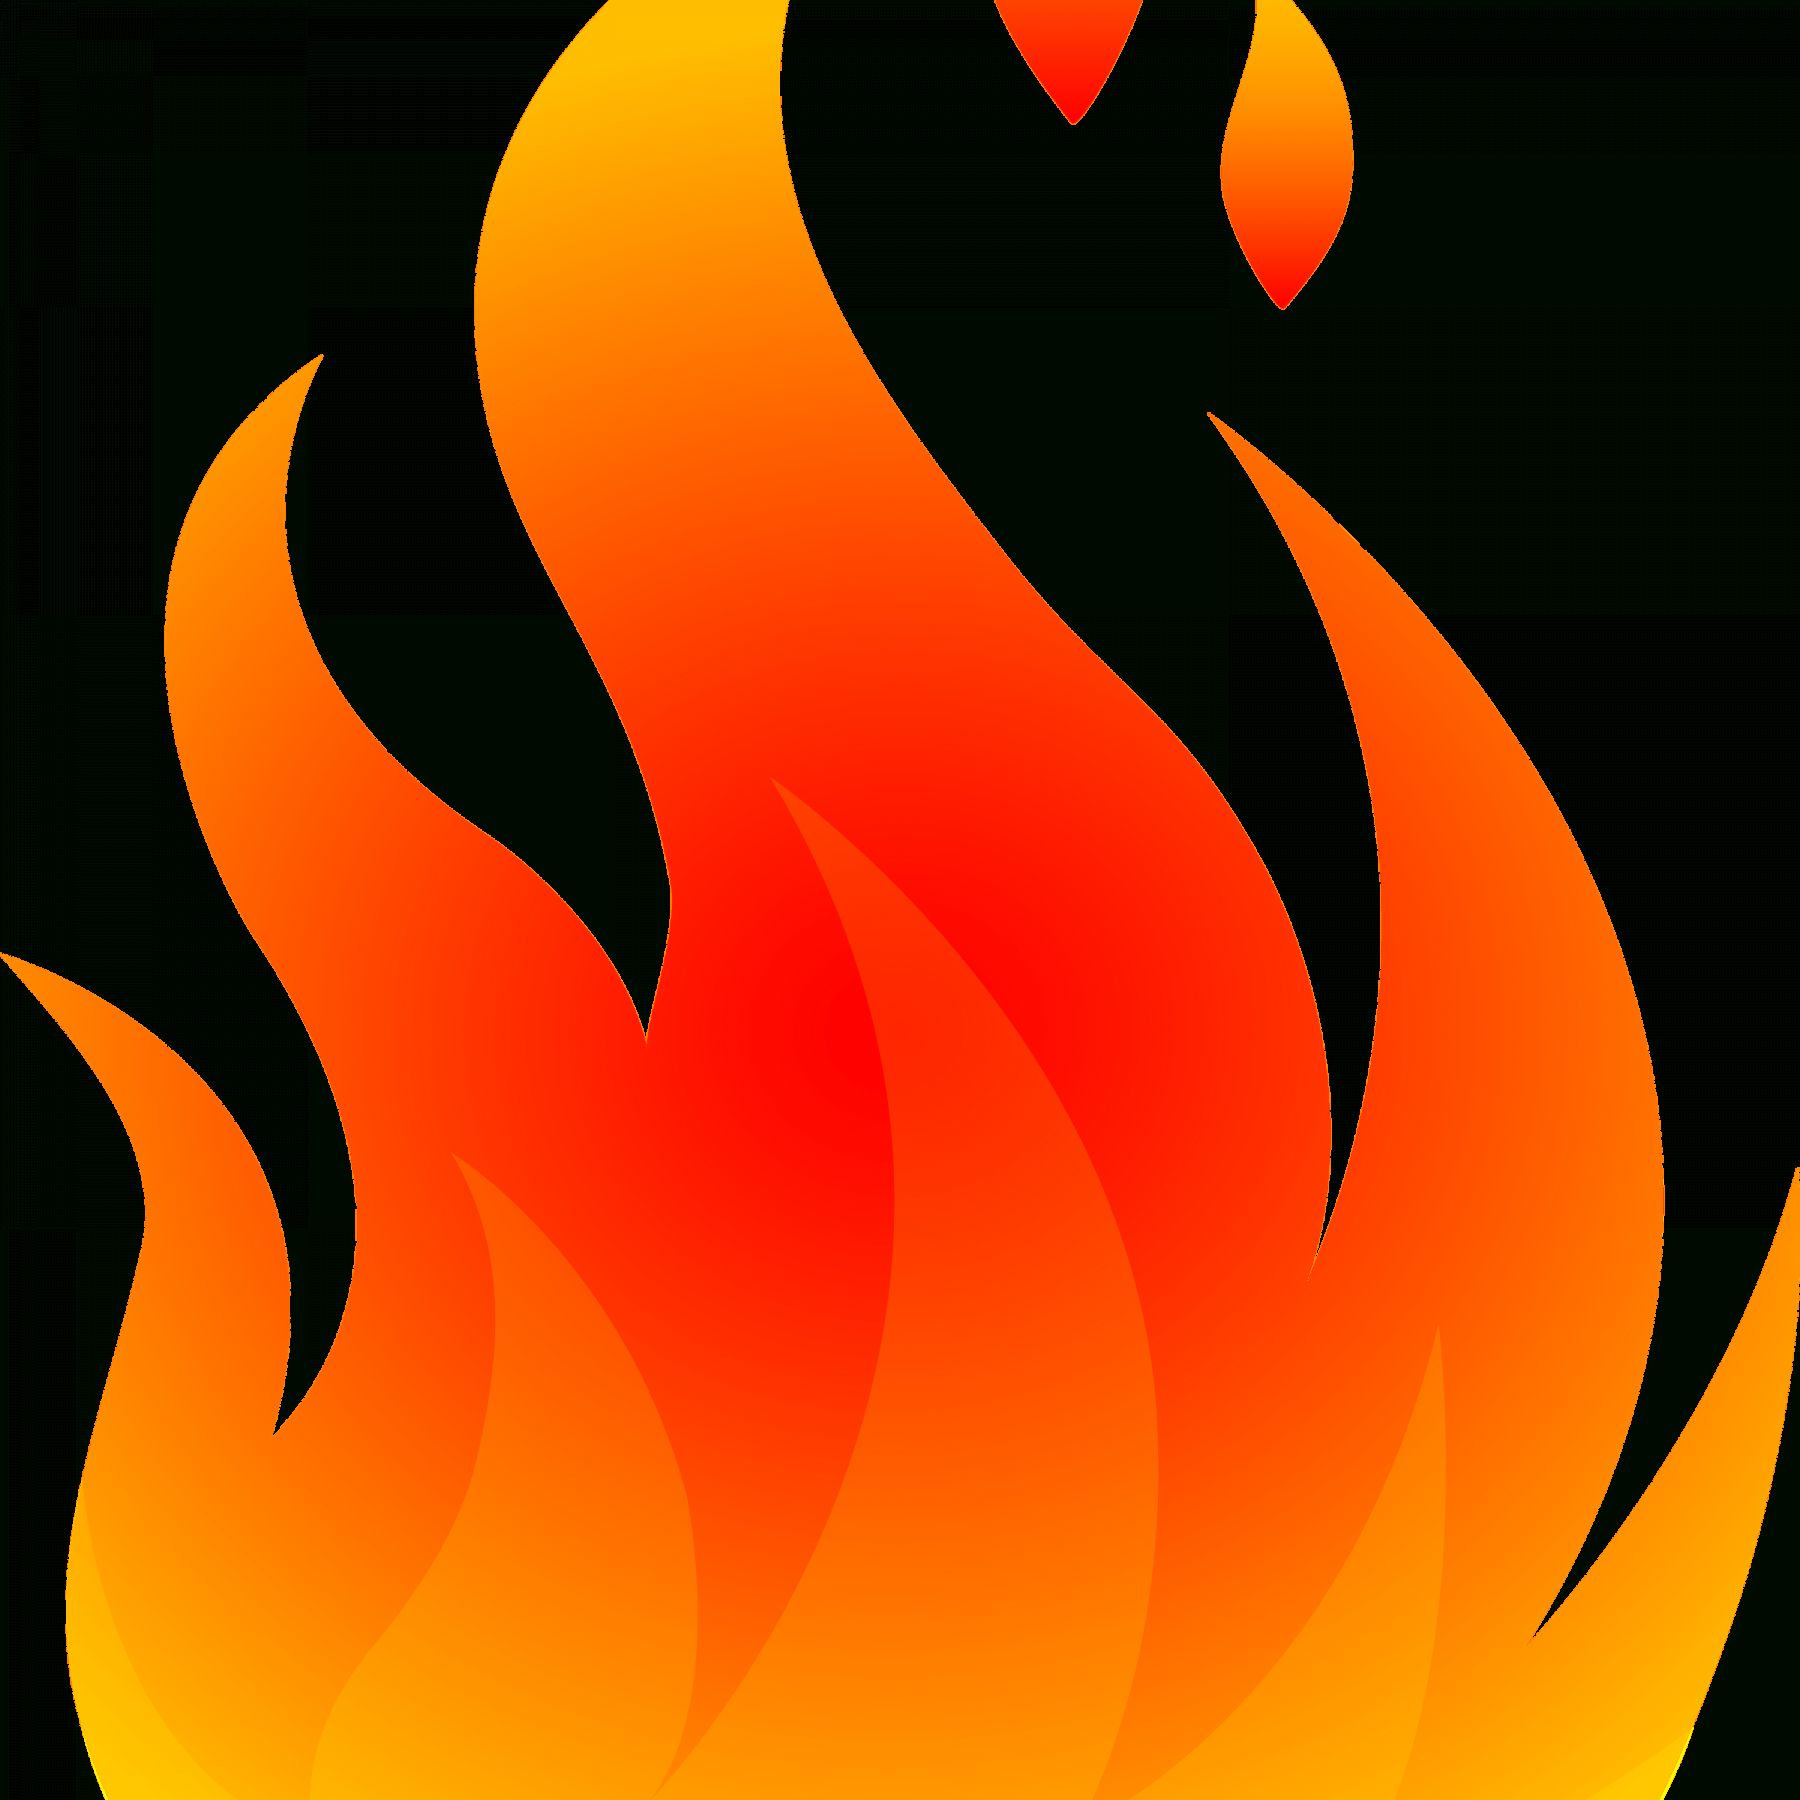 18 Fire Cartoon Png Transparent Cartoons Png Image Icon Fire Animation